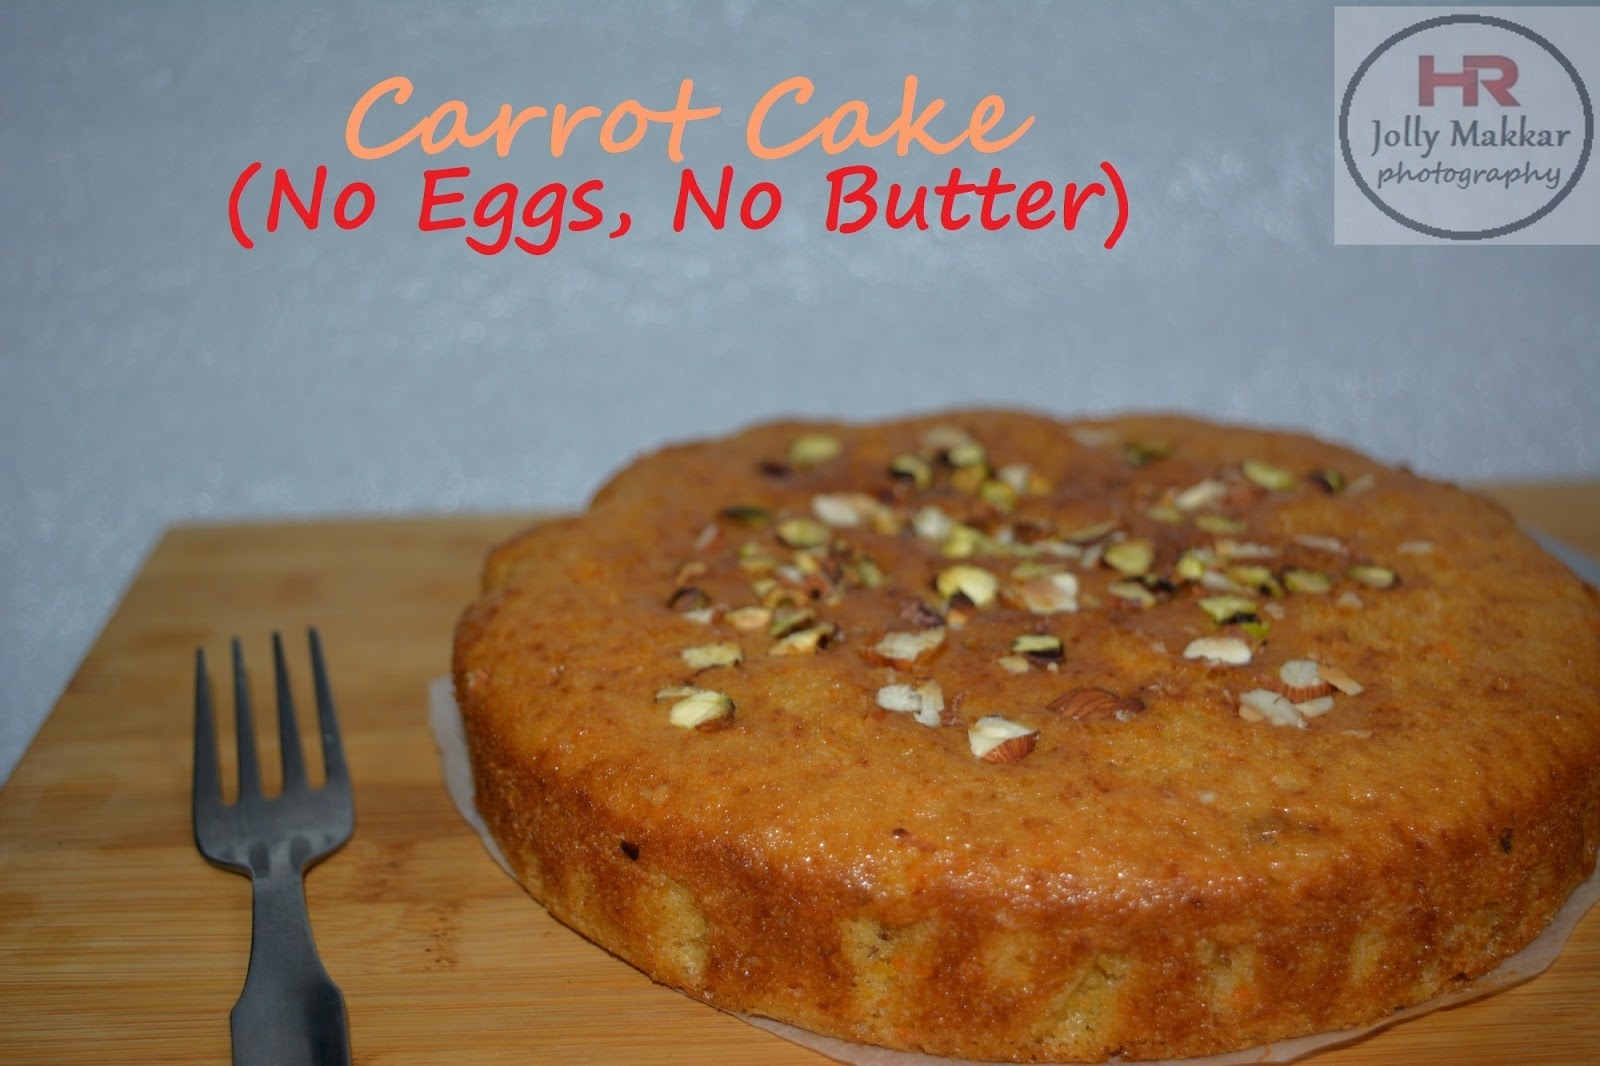 Eggless Carrot Cake Recipe, How to make Carrot Cake with (No Eggs, No Butter) | Carrot Cake Recipe